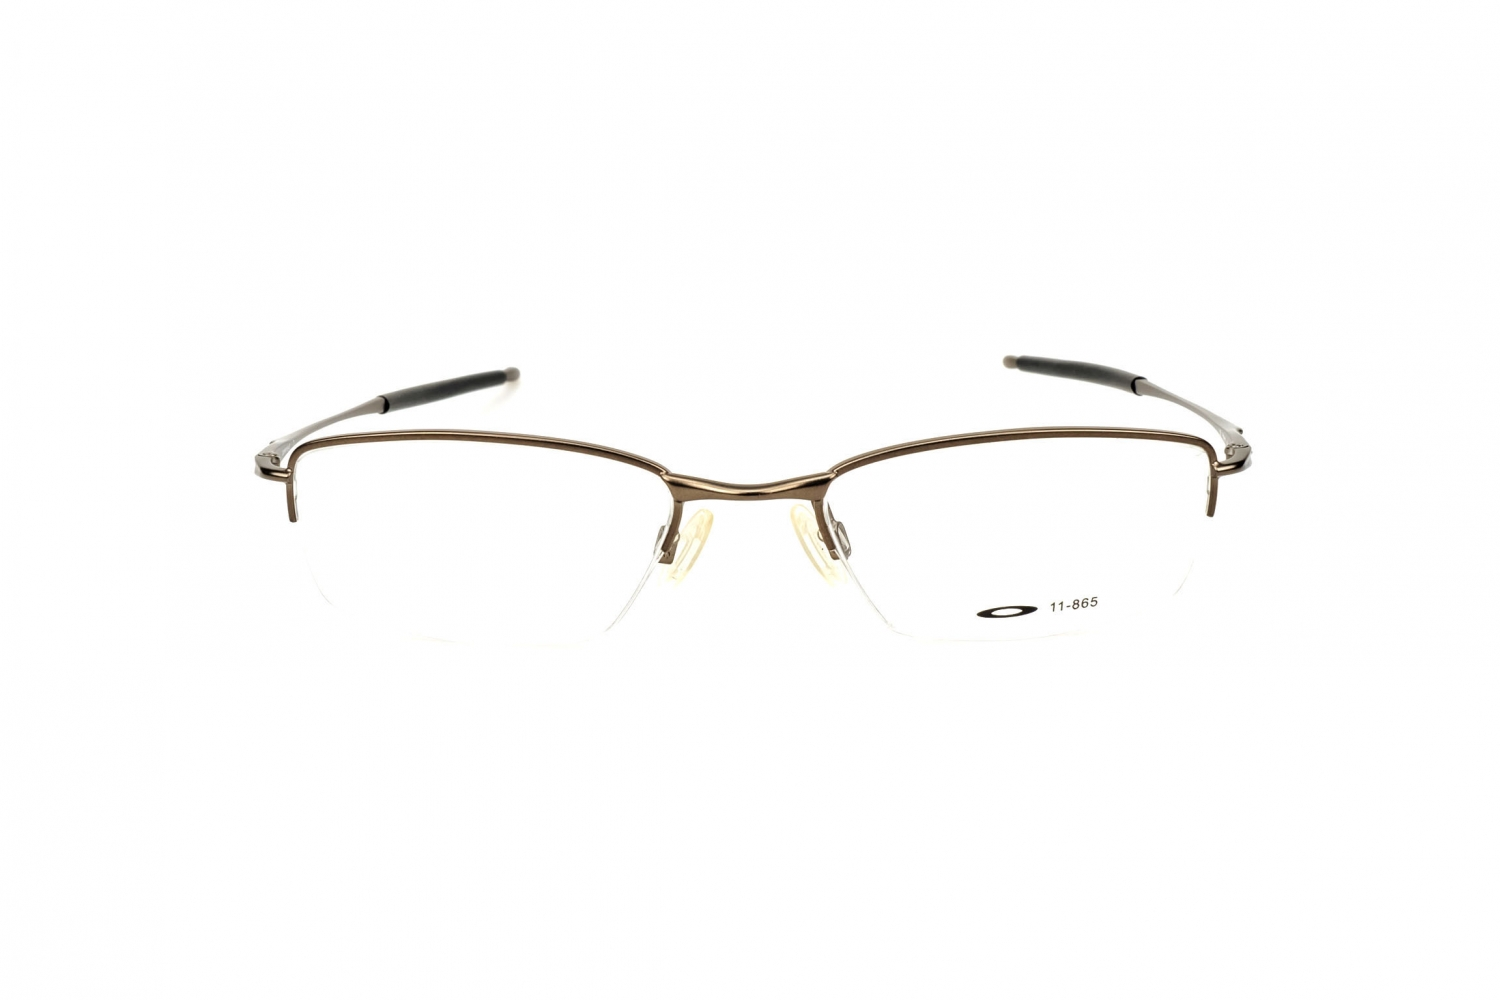 Oakley OX11-865 Jackknife 4.0 Pewter